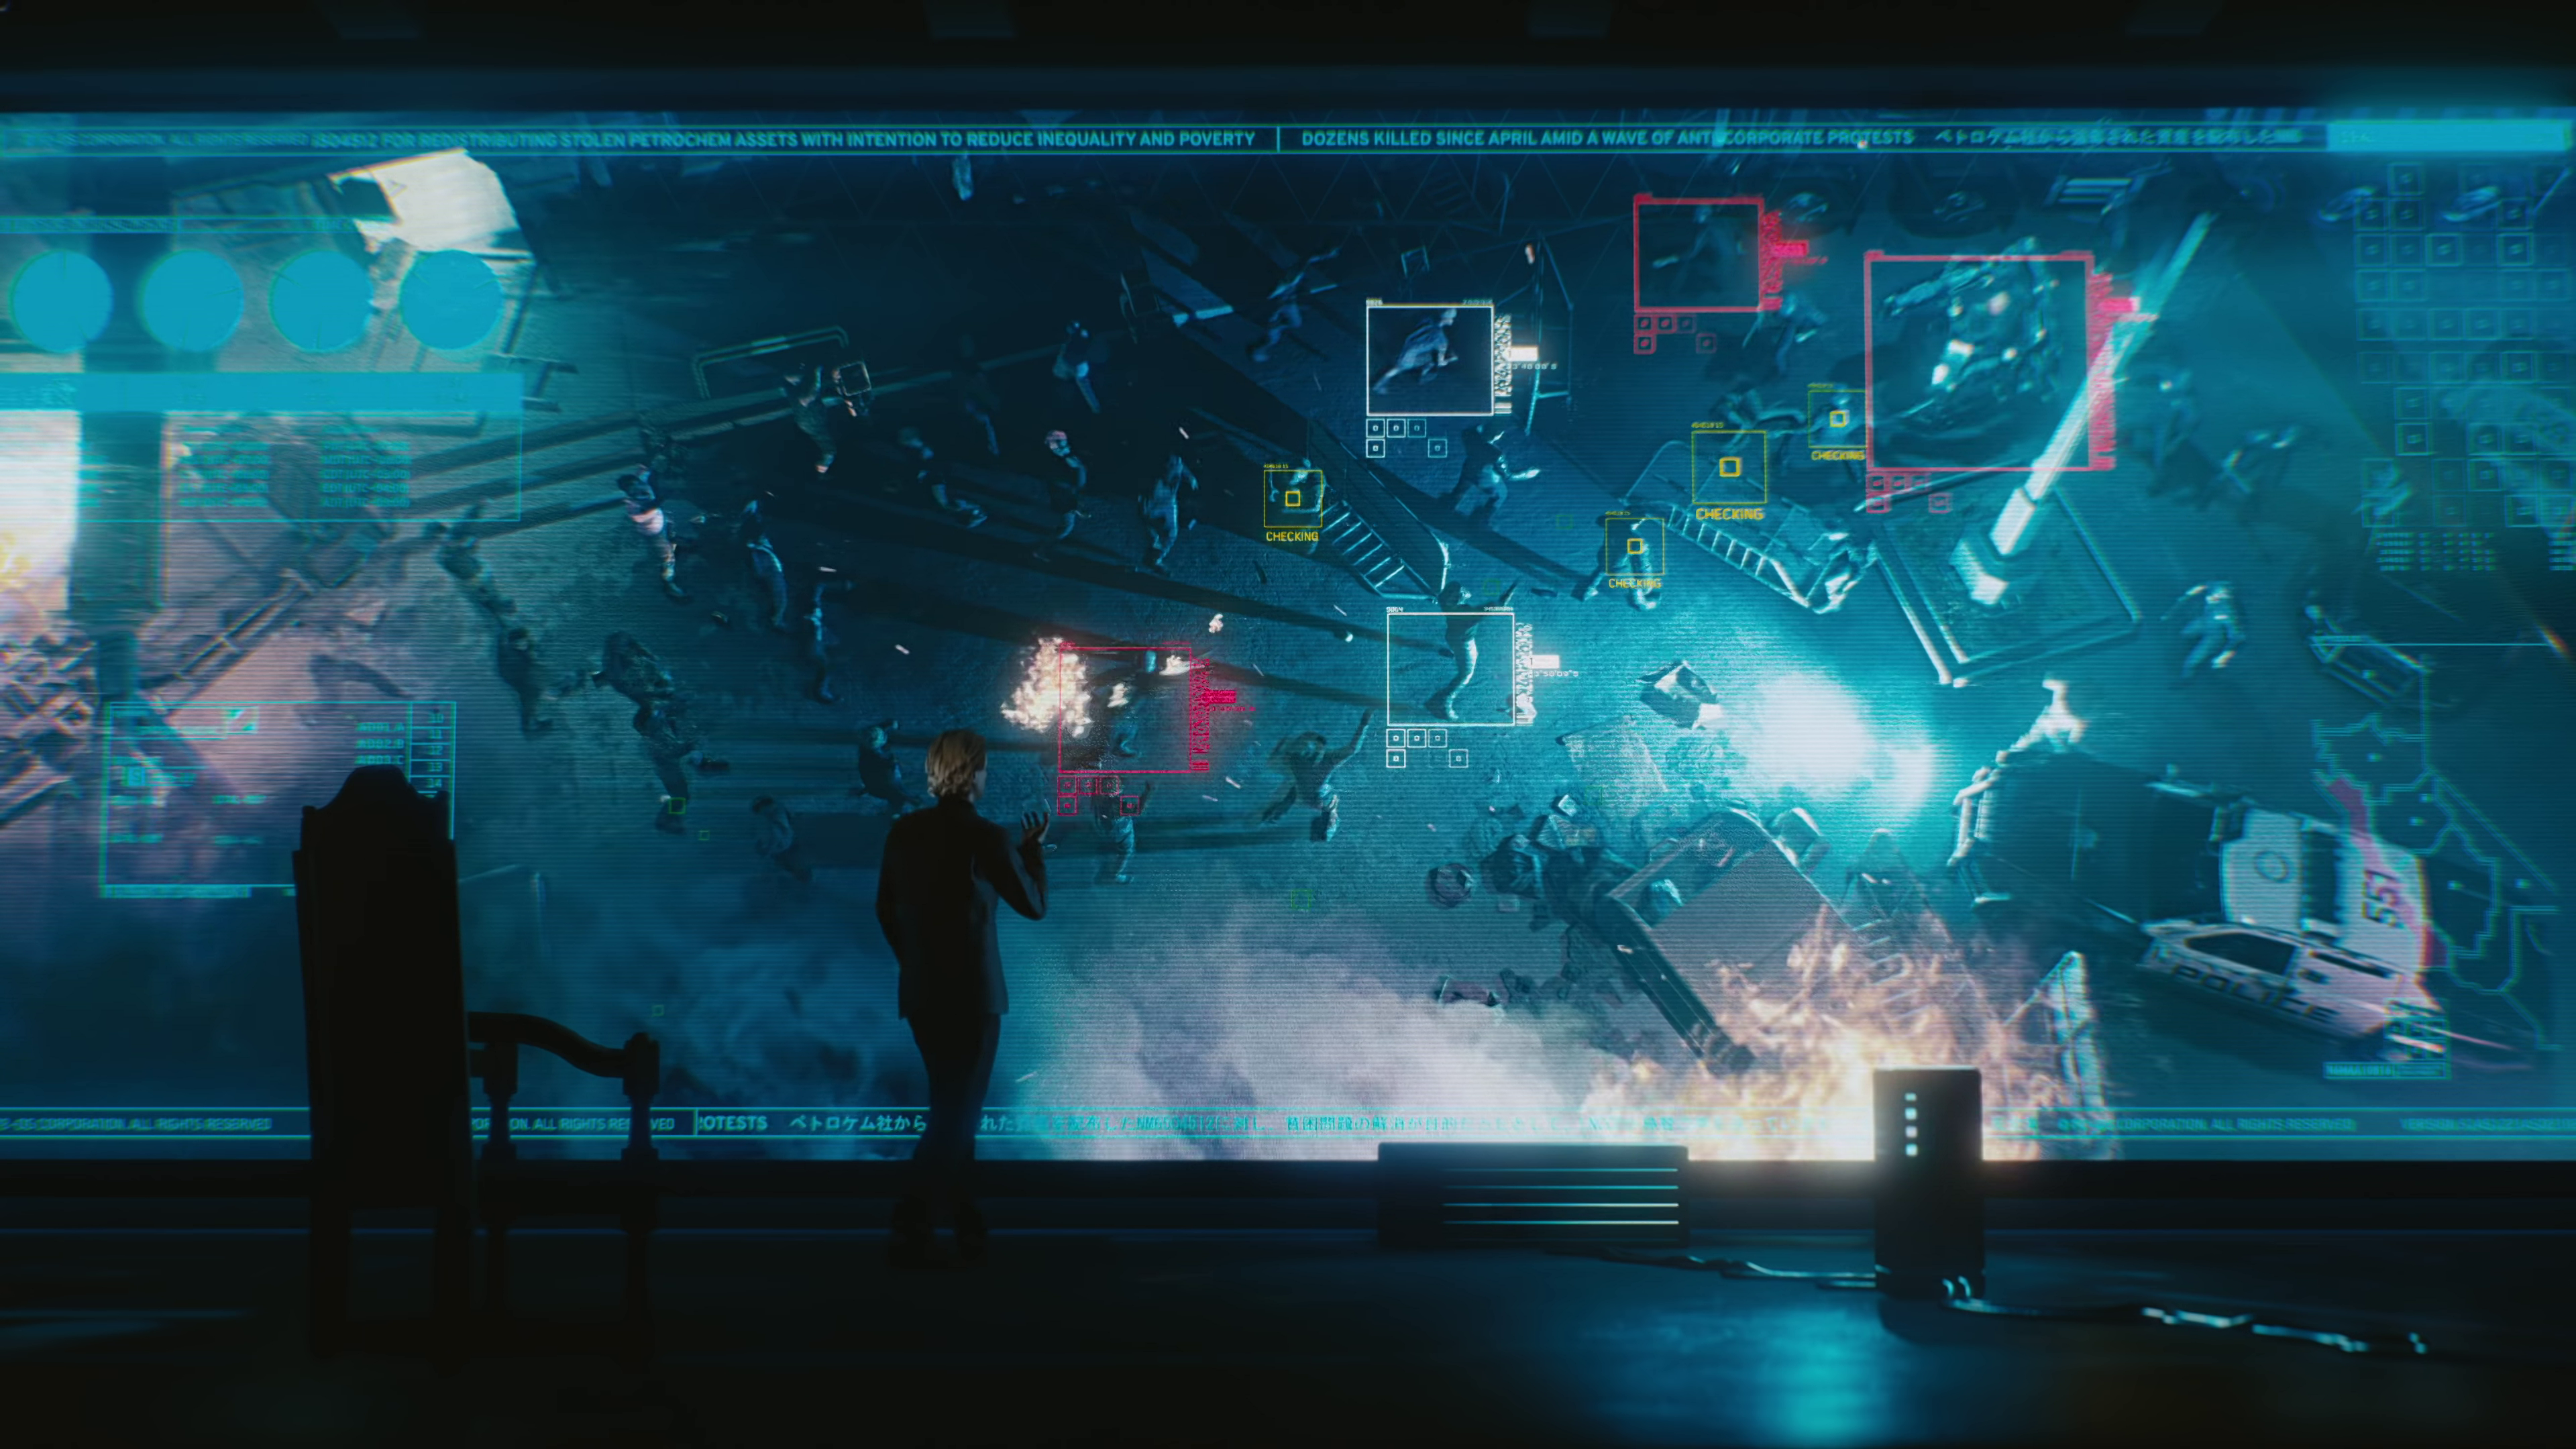 uhd Cyberpunk 2077 Wallpapers